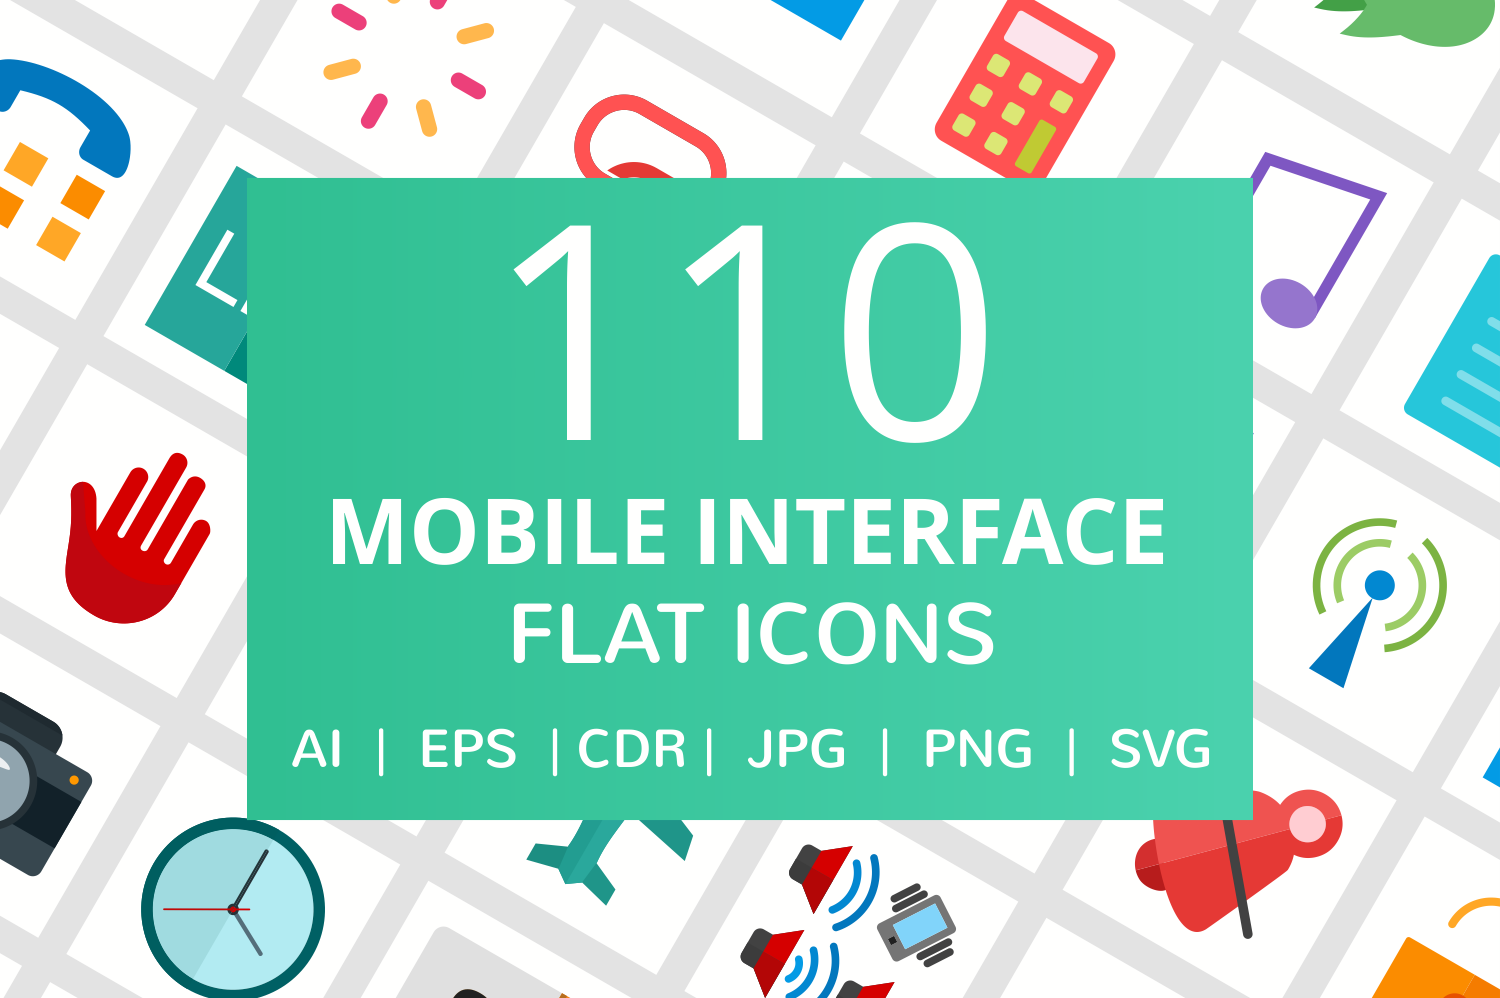 110 Mobile Interface Flat Icons example image 1